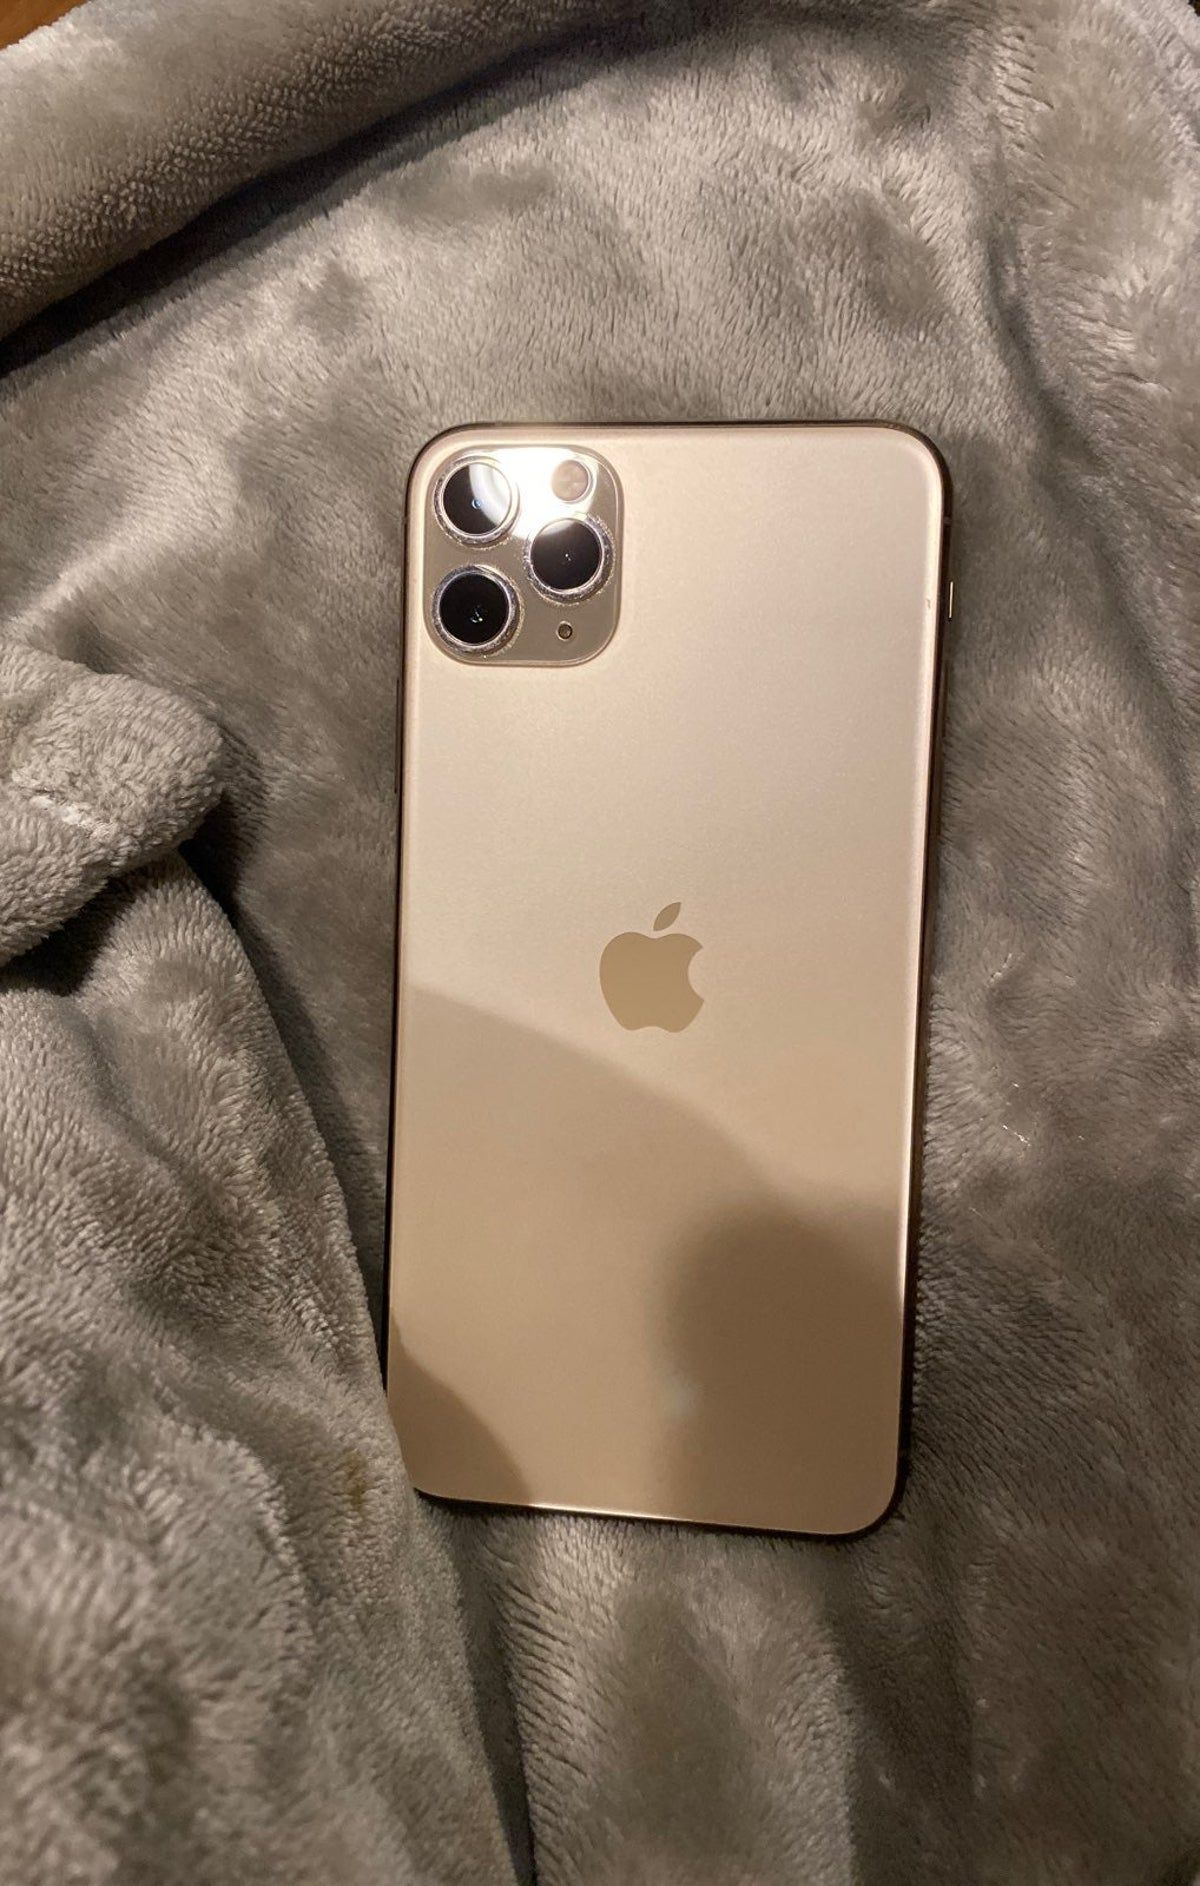 Iphone 11 Pro Max Rose Gold 512gb In 2020 Apple Mobile Phones Rose Gold Iphone Iphone